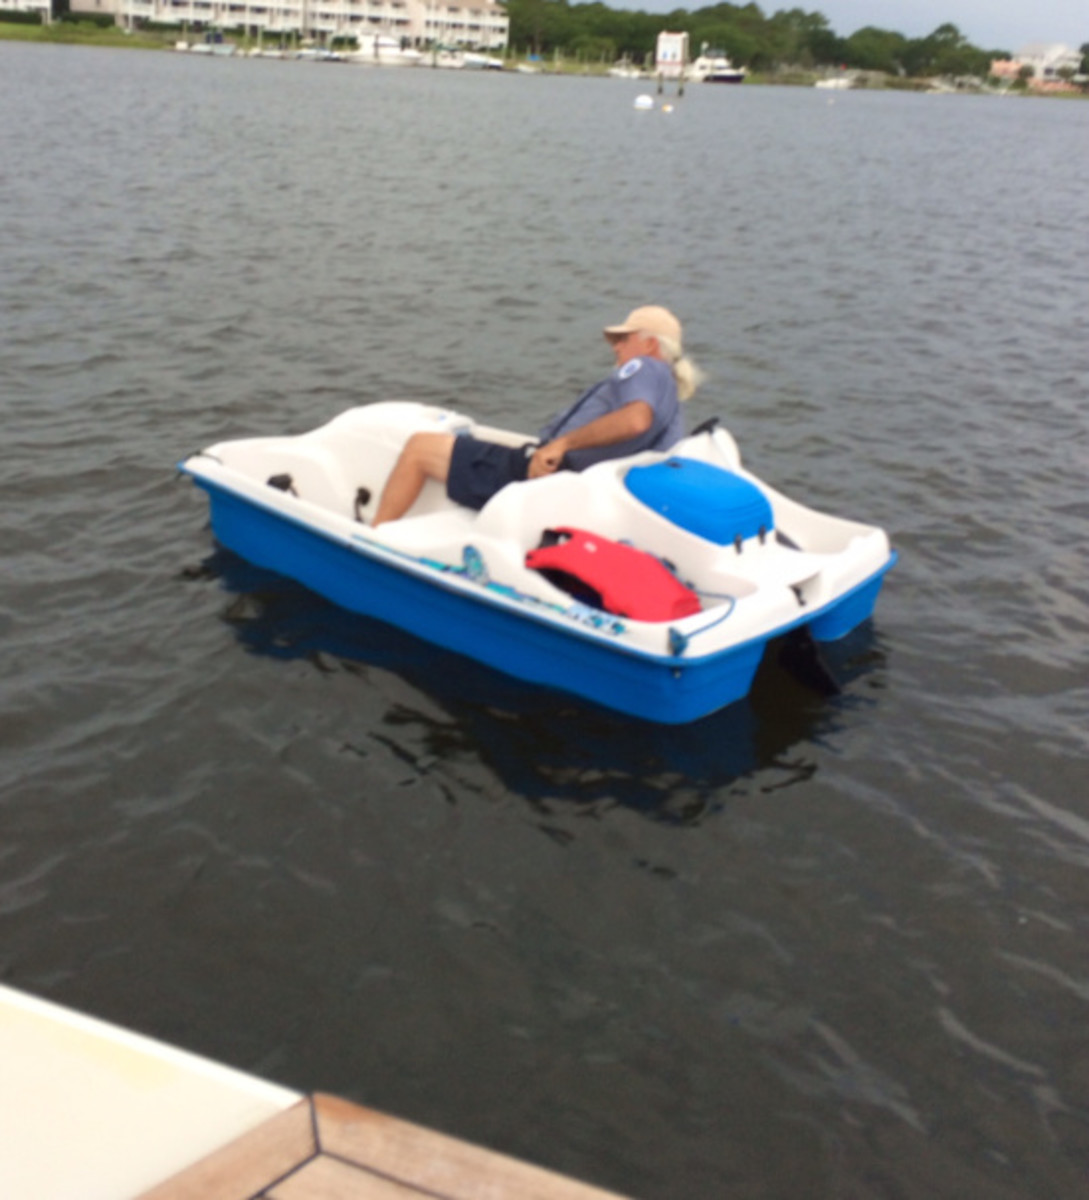 Our esteemed paddle-boating harbormaster.